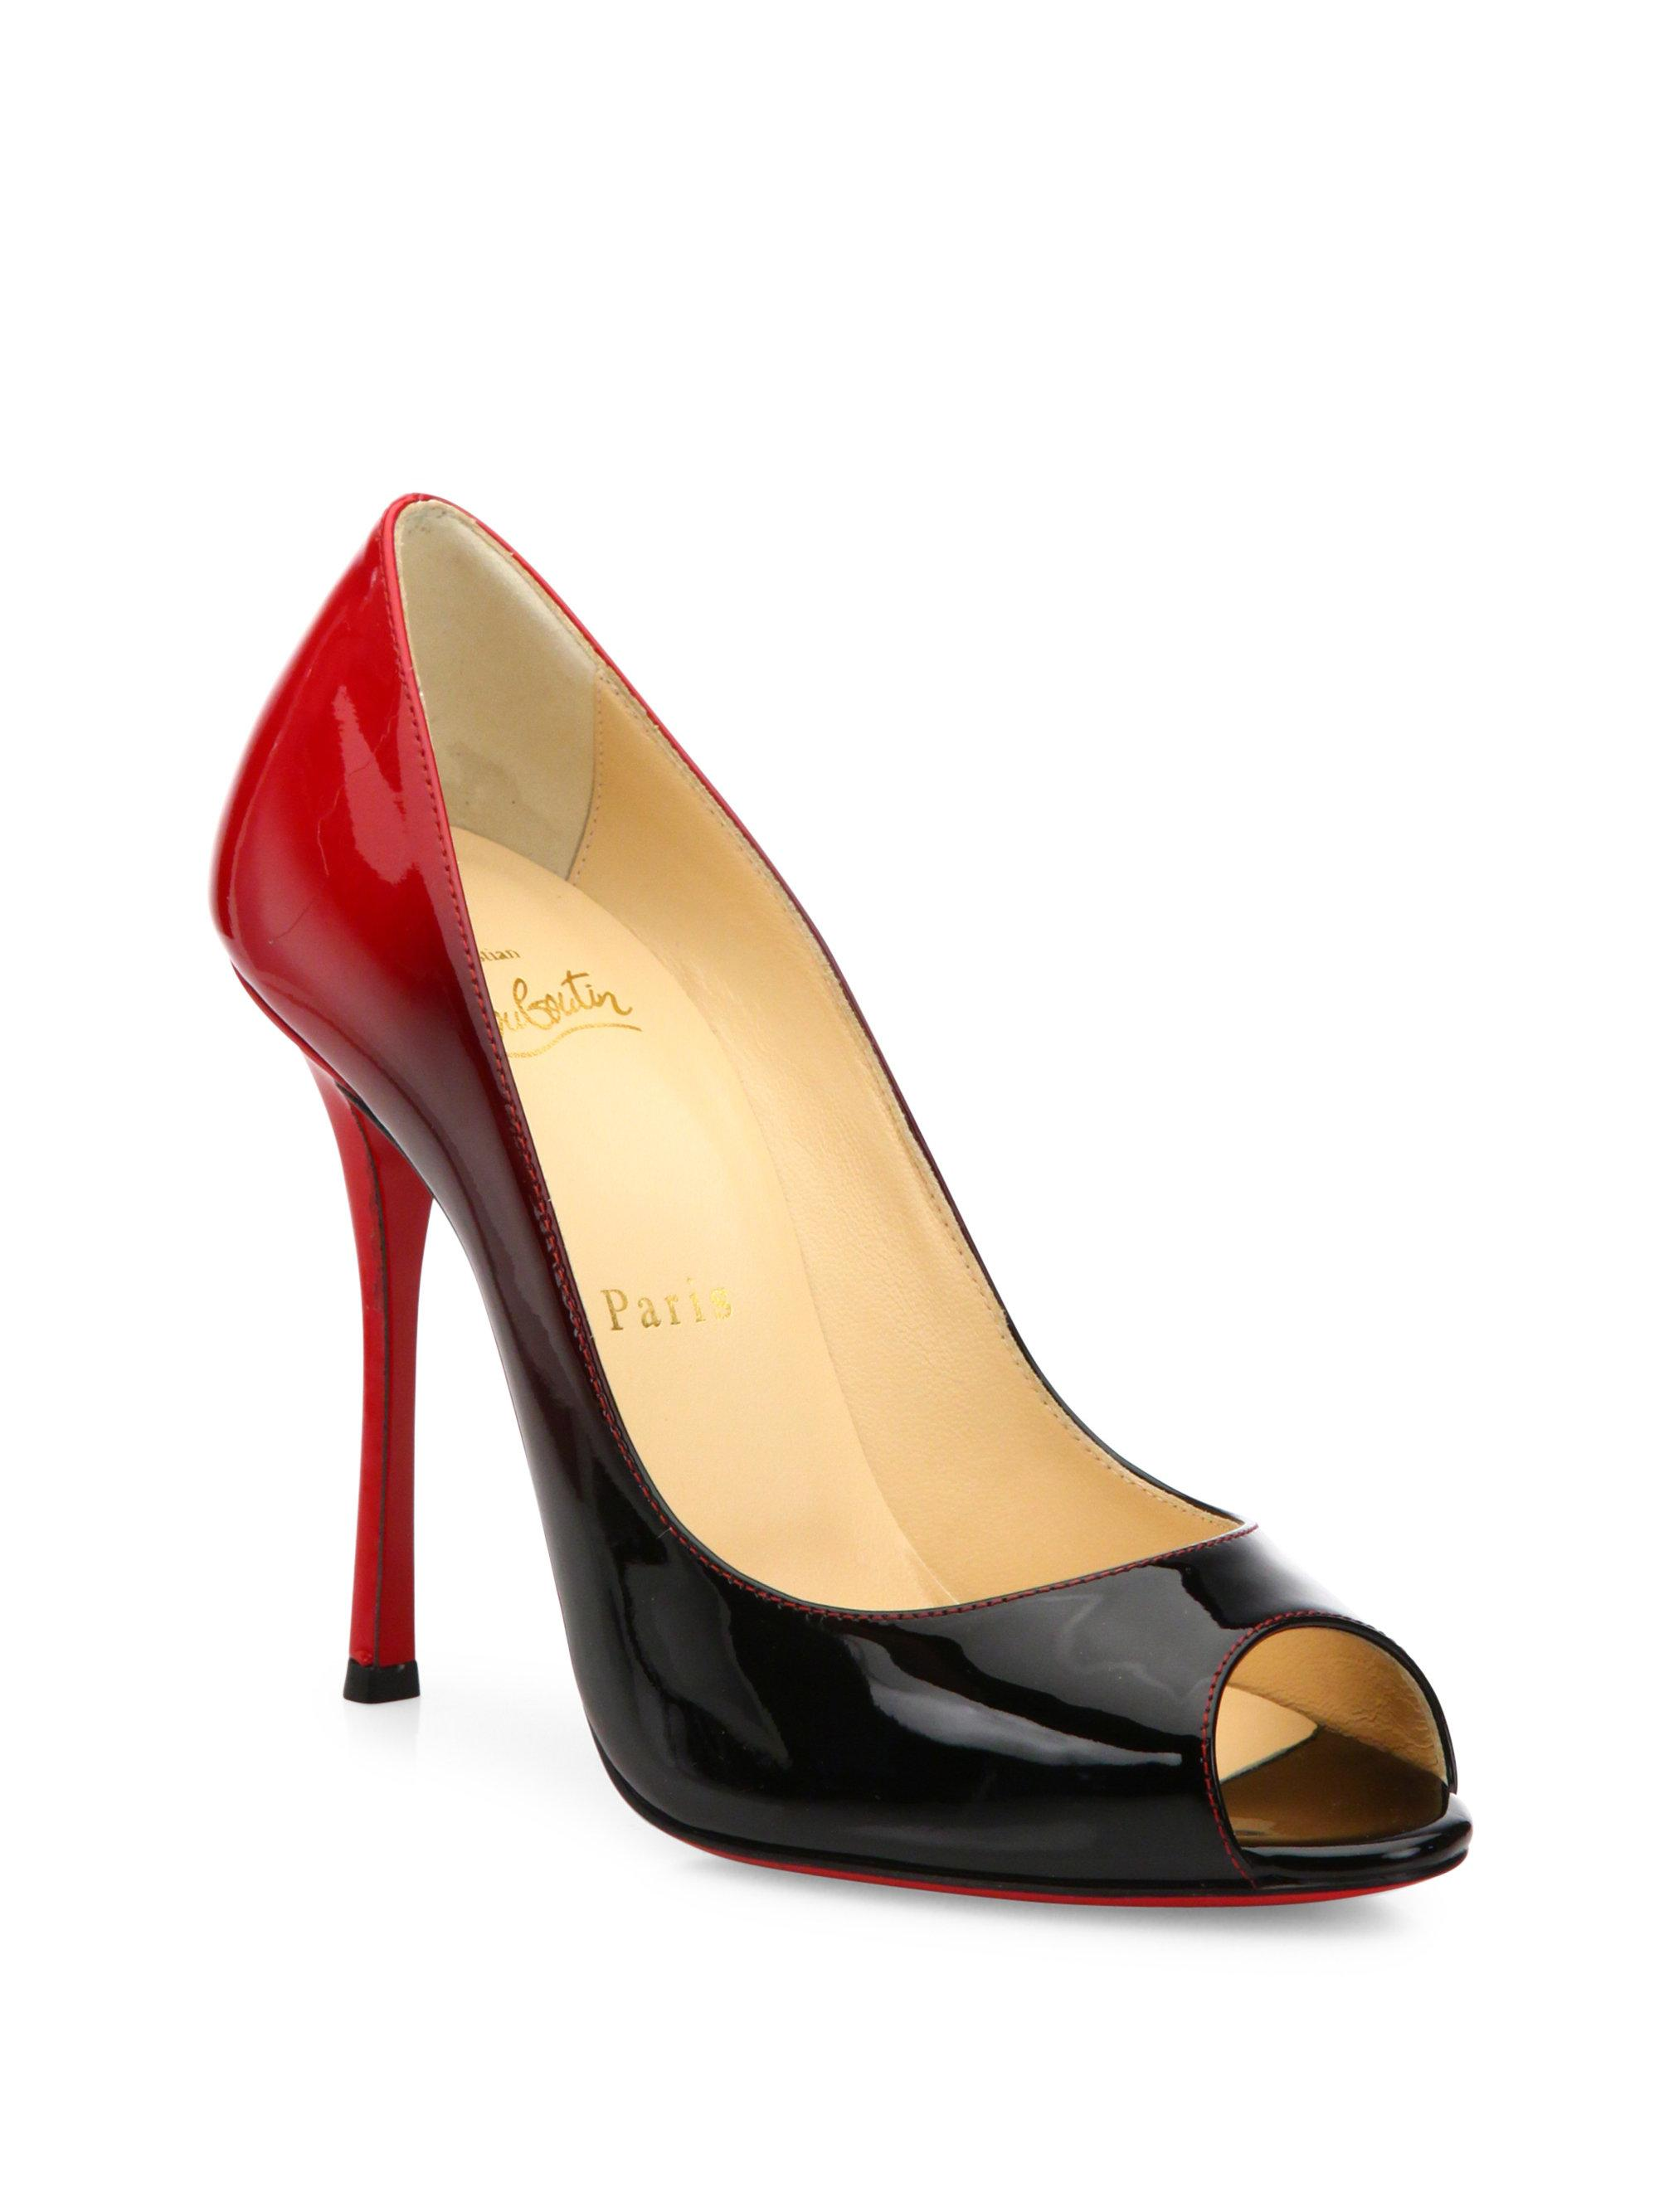 573f205e821 Lyst - Christian Louboutin Yootish 100 Ombre Patent Leather Peep Toe ...